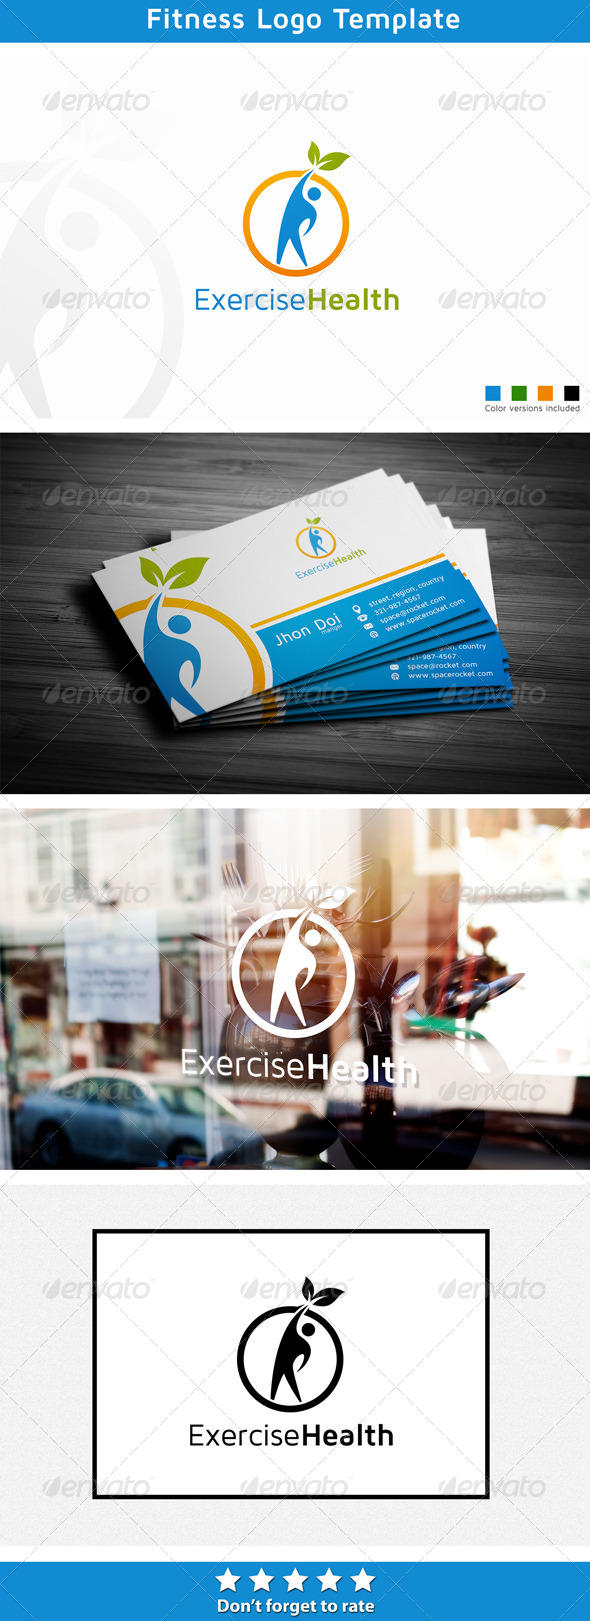 Fitness Consultant - Humans Logo Templates